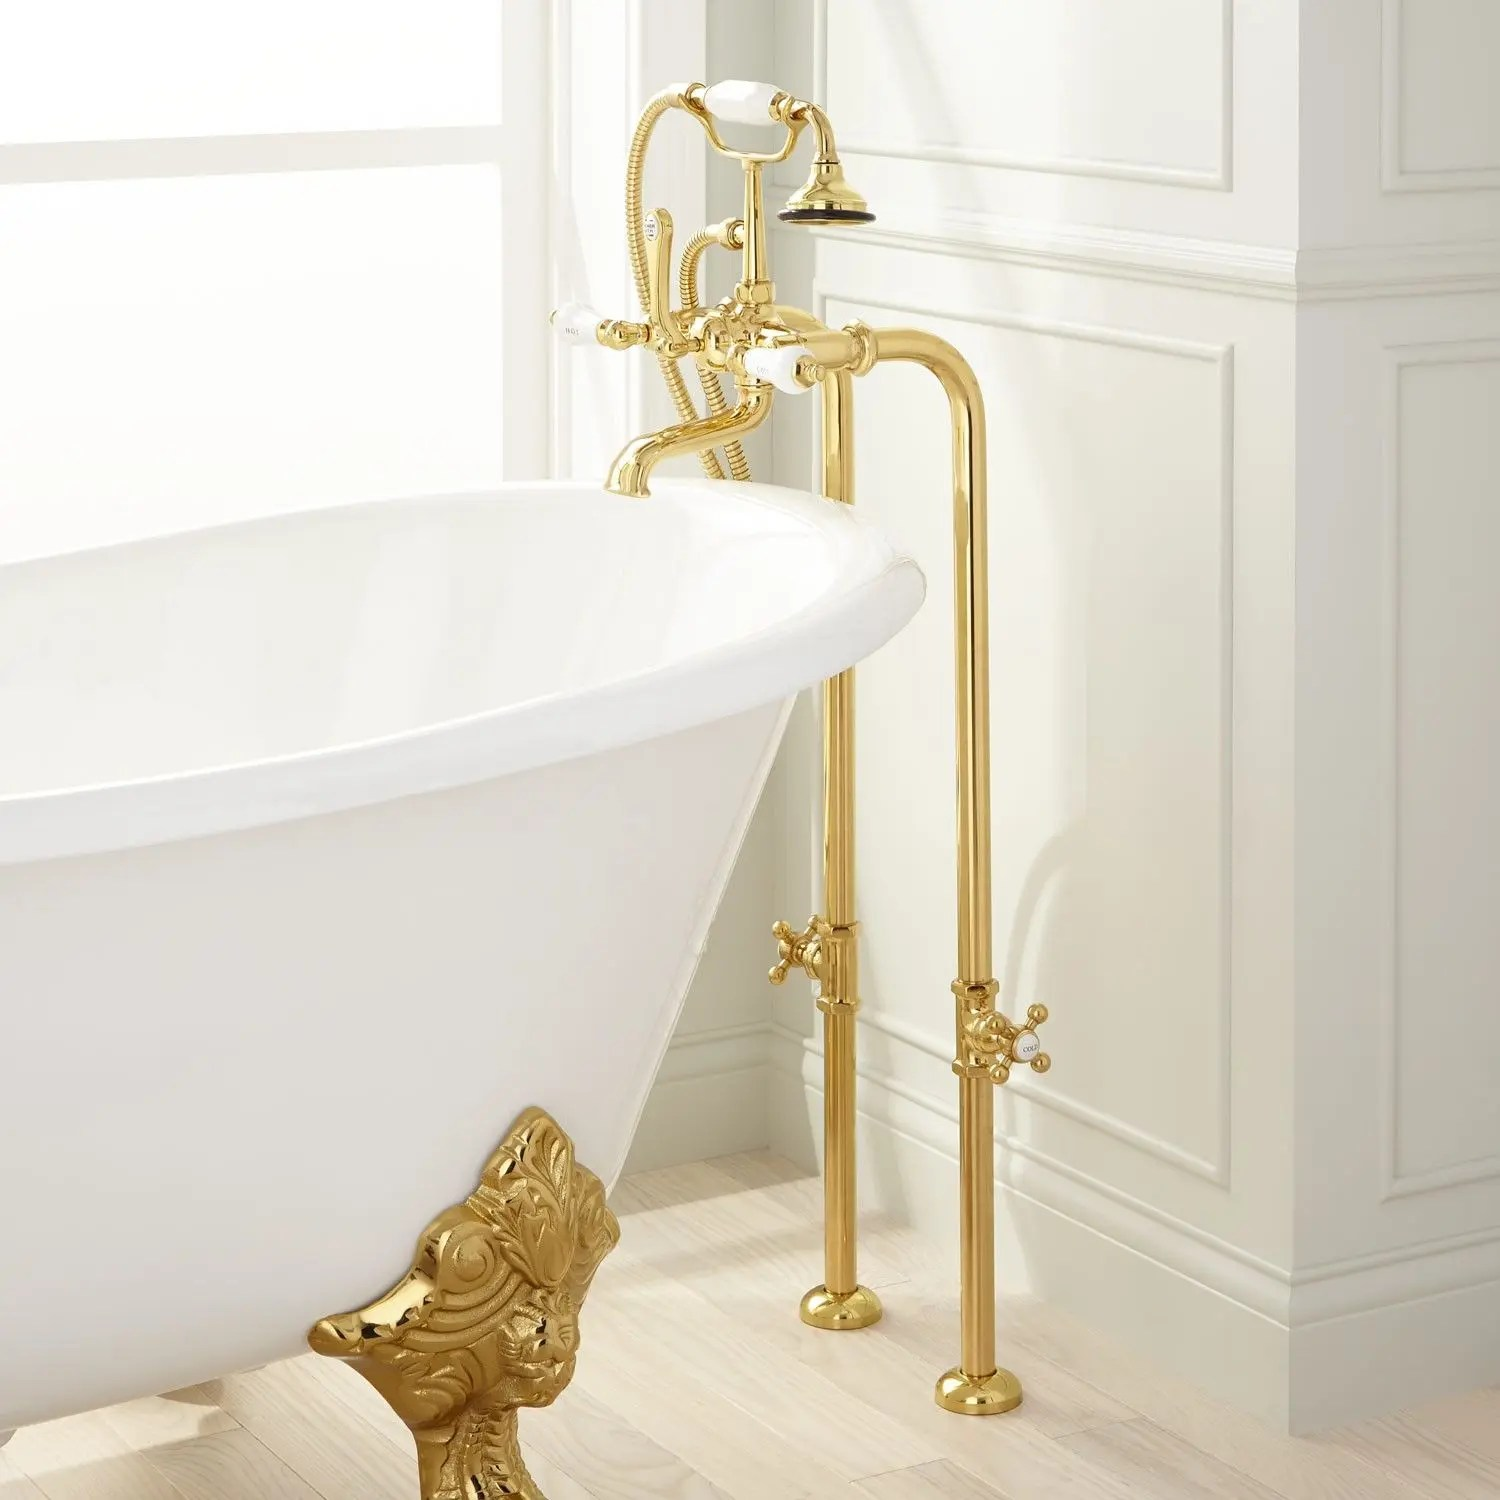 freestanding telephone tub faucet supplies and valves porcelain lever handles